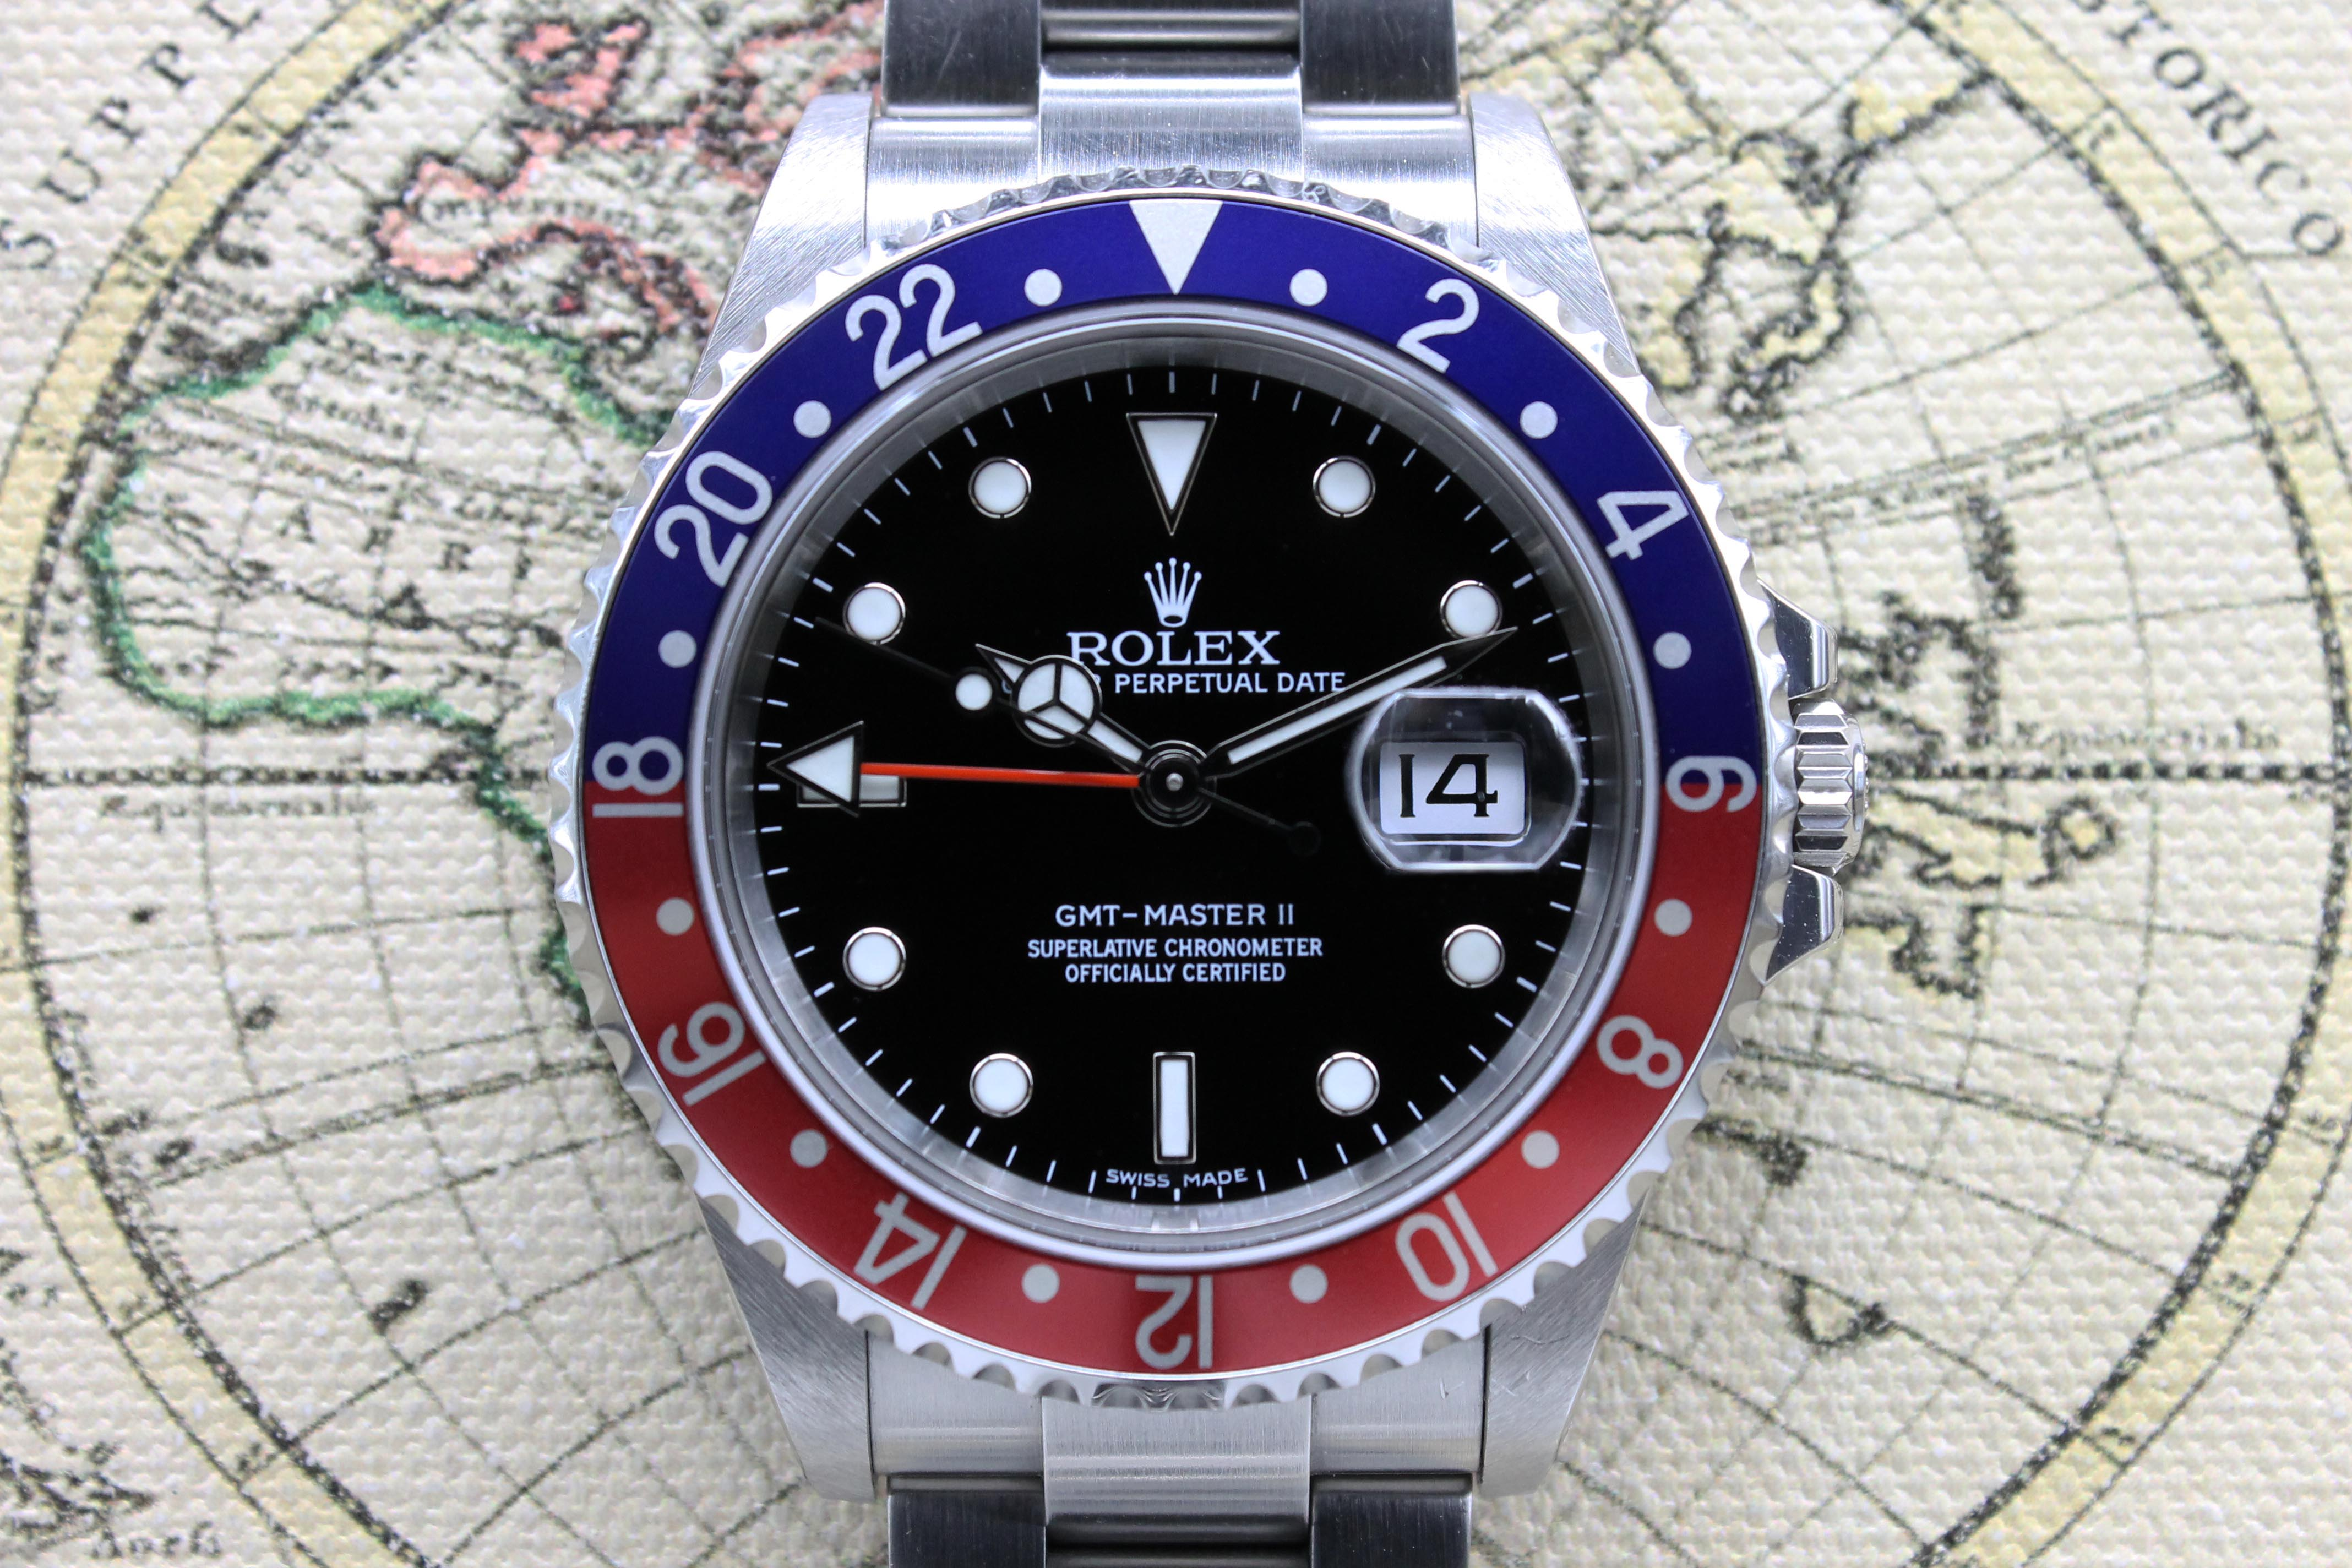 Rolex Gmt Master Ii Stick Dial 3186 Ref 16710b Year 2008 Full